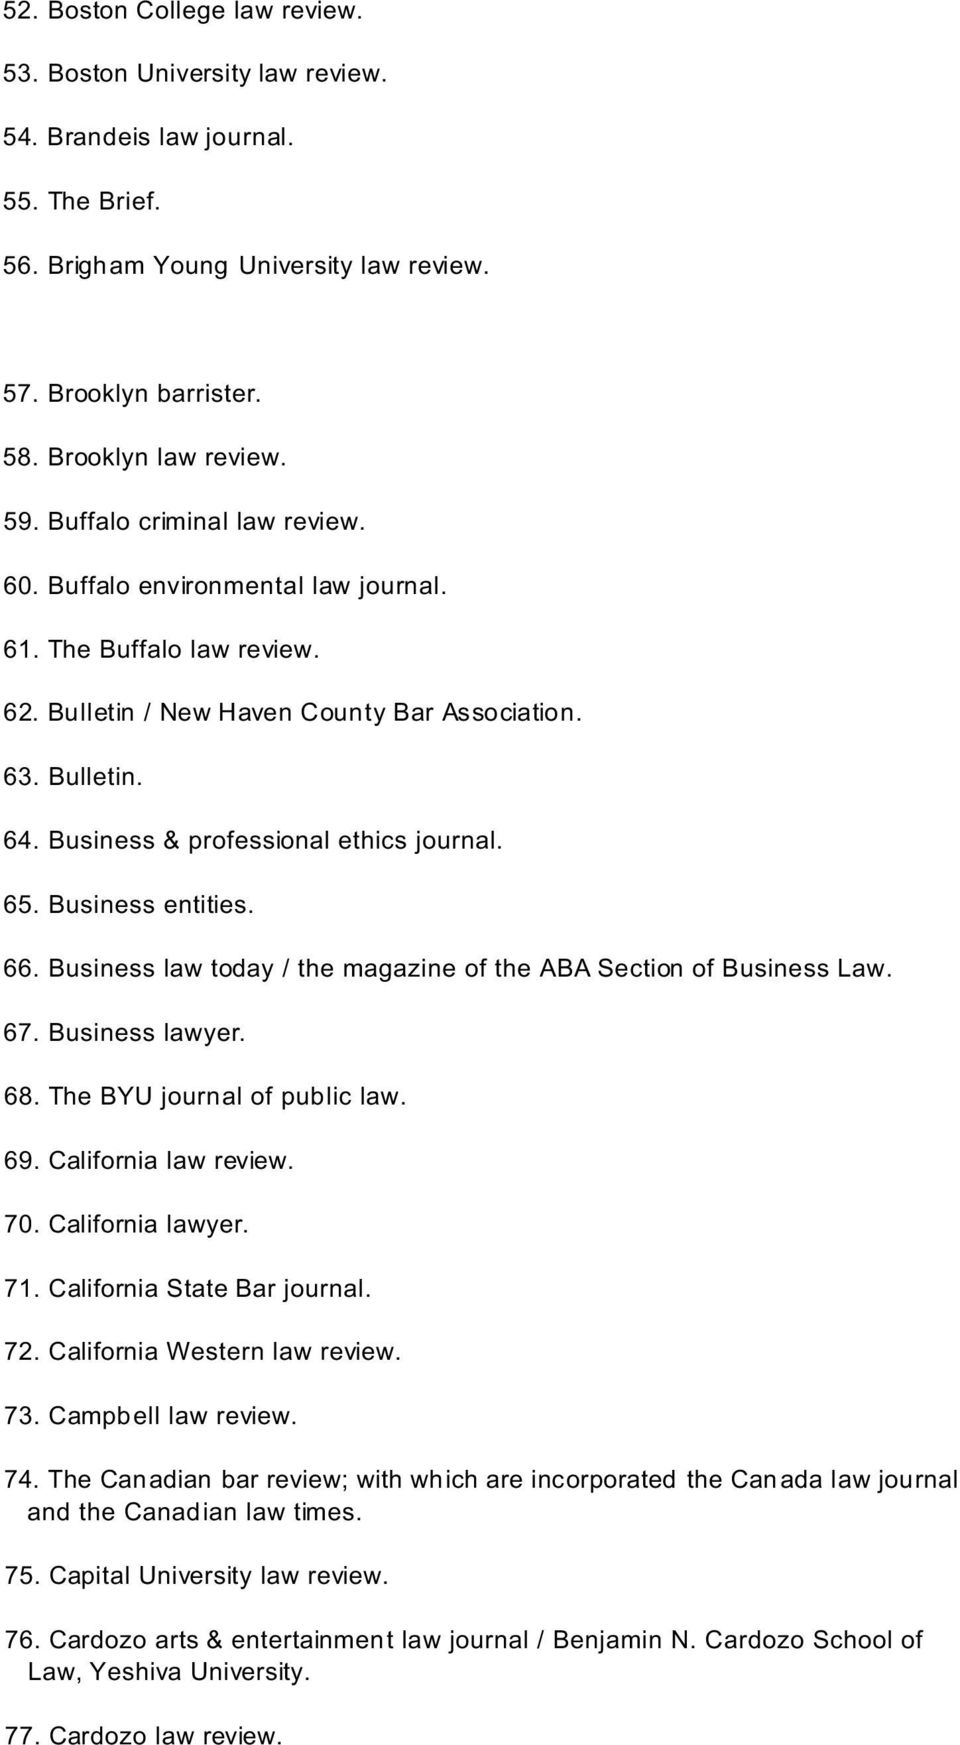 Business & professional ethics journal. 65. Business entities. 66. Business law today / the magazine of the ABA Section of Business Law. 67. Business lawyer. 68. The BYU journal of public law. 69.